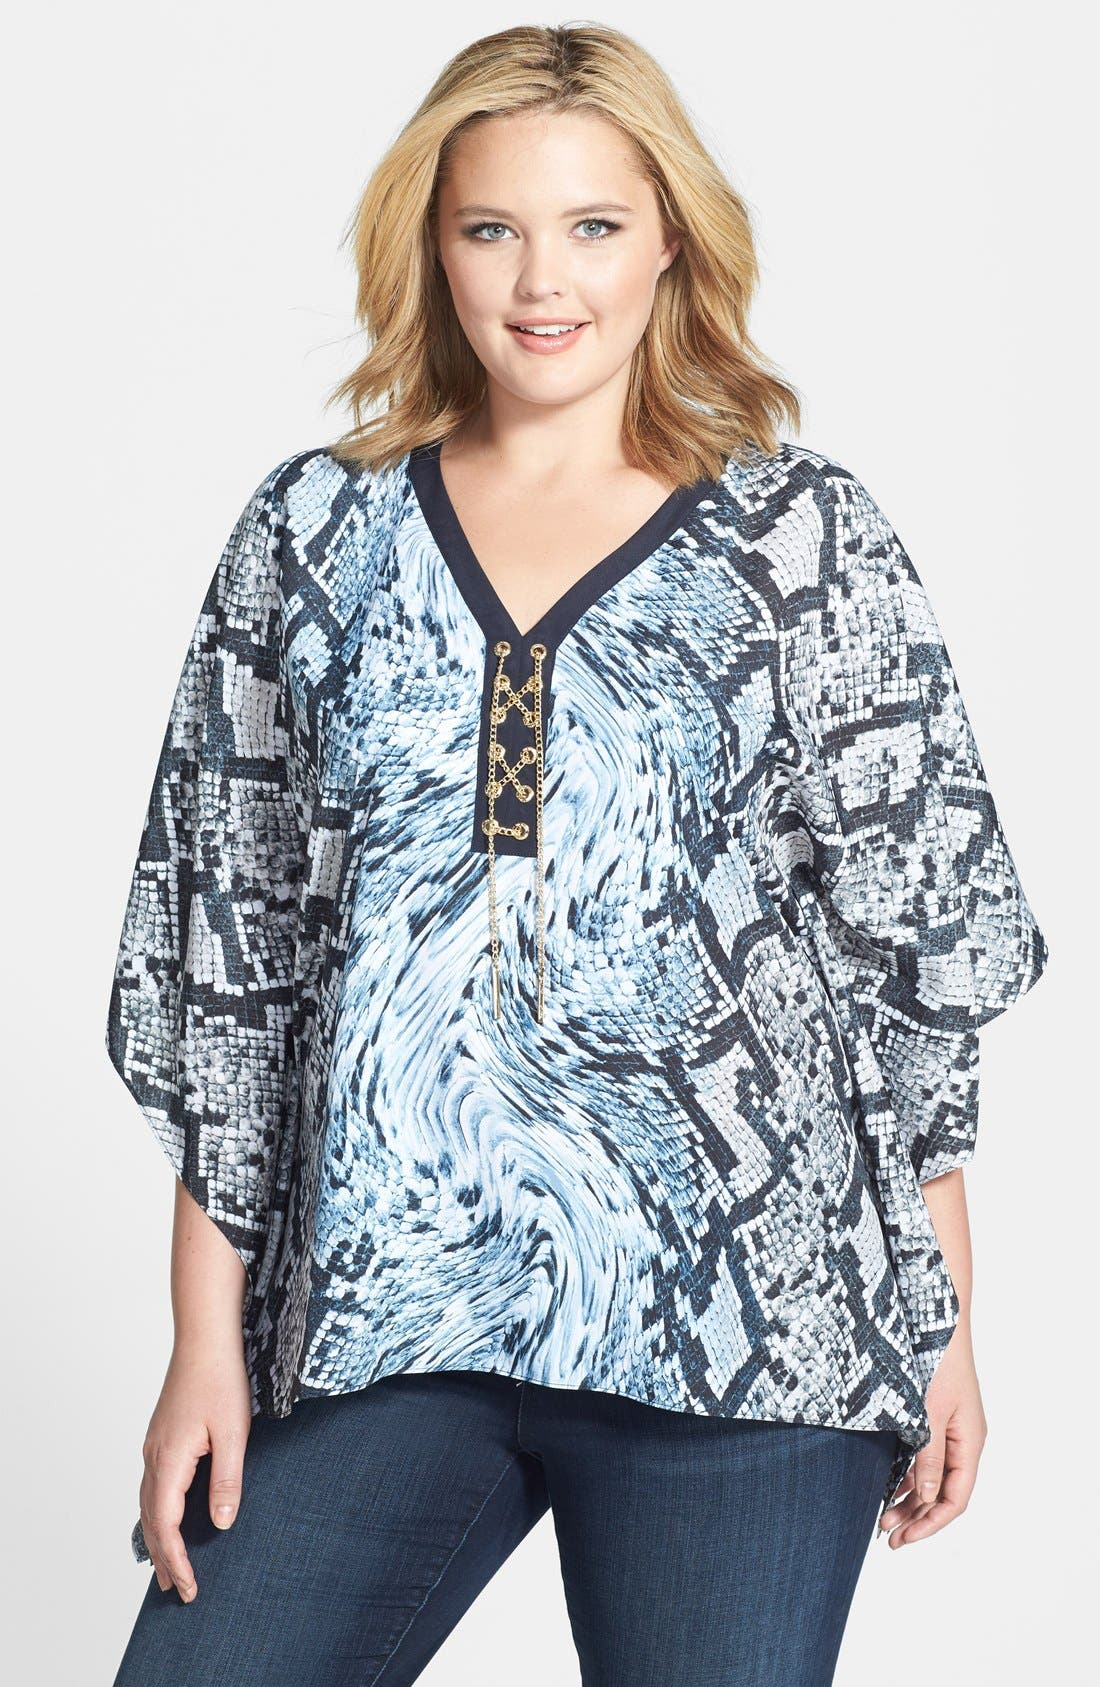 Main Image - MICHAEL Michael Kors 'Swirl Snake' Chain Lace-Up Poncho Top (Plus Size)